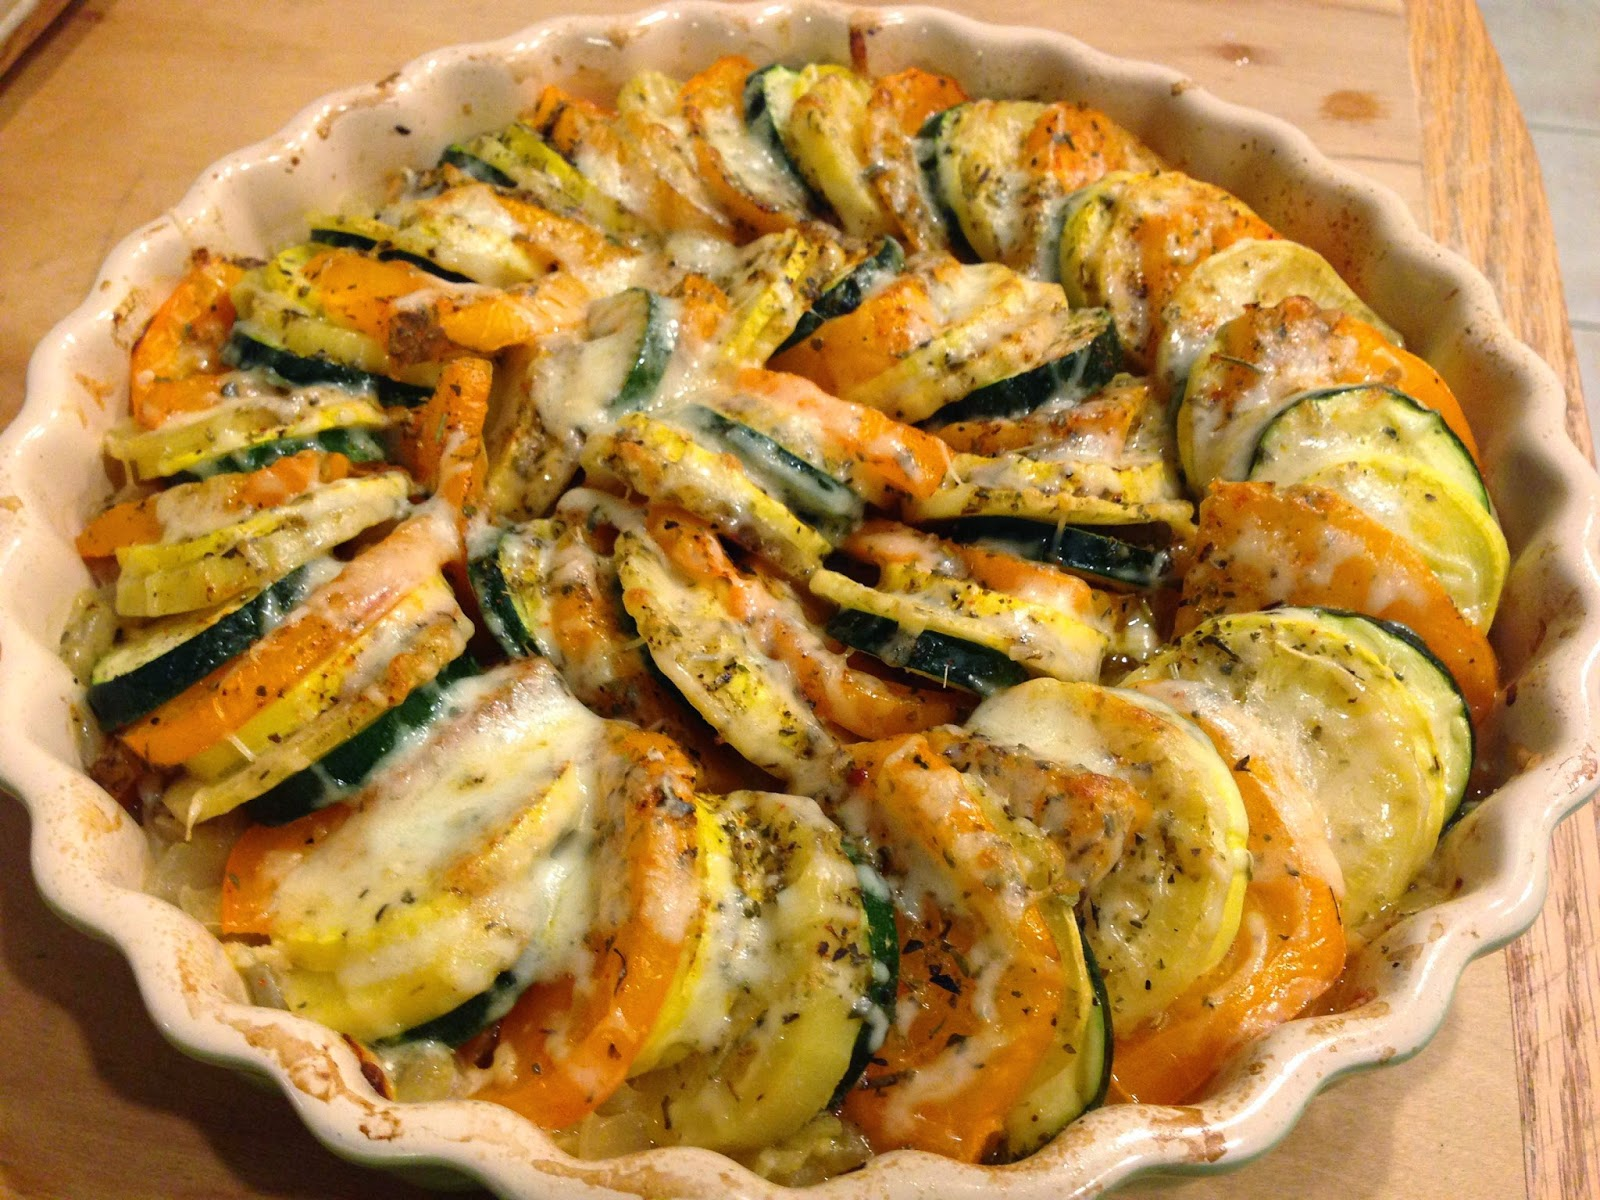 The Blue Muse: A must-make recipe: Vegetable tian